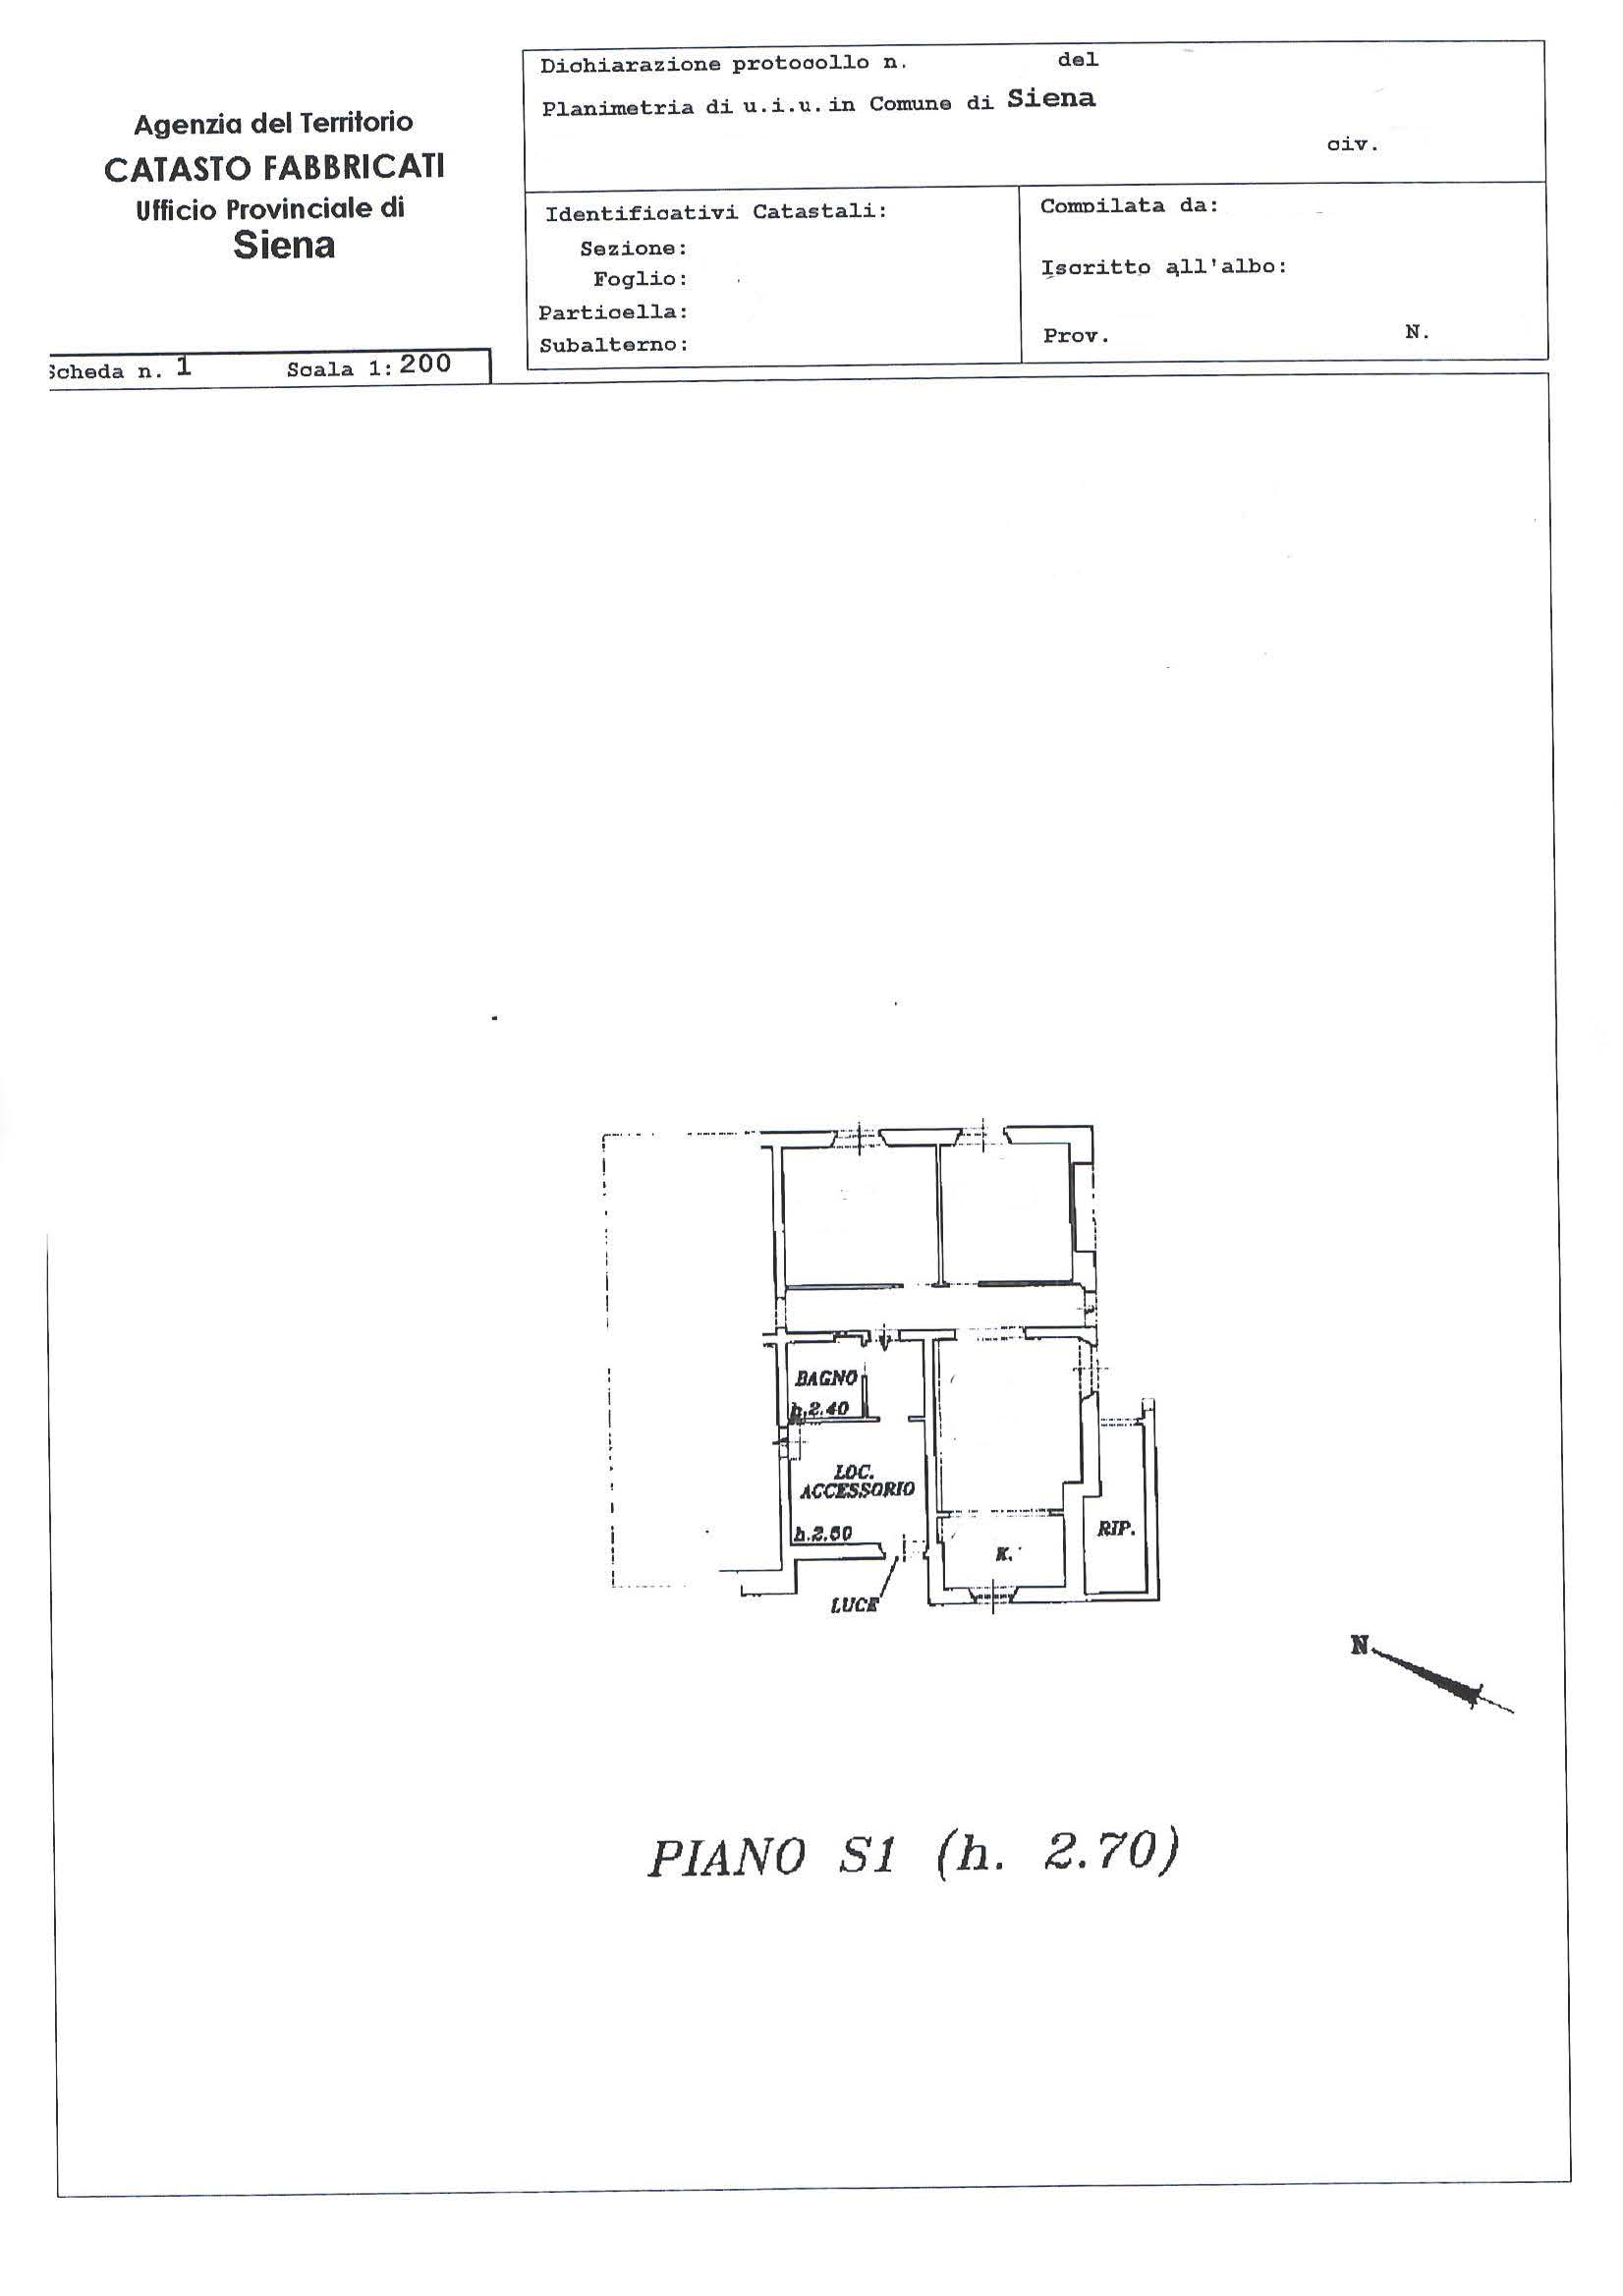 Plan 2/3 for ref. 074